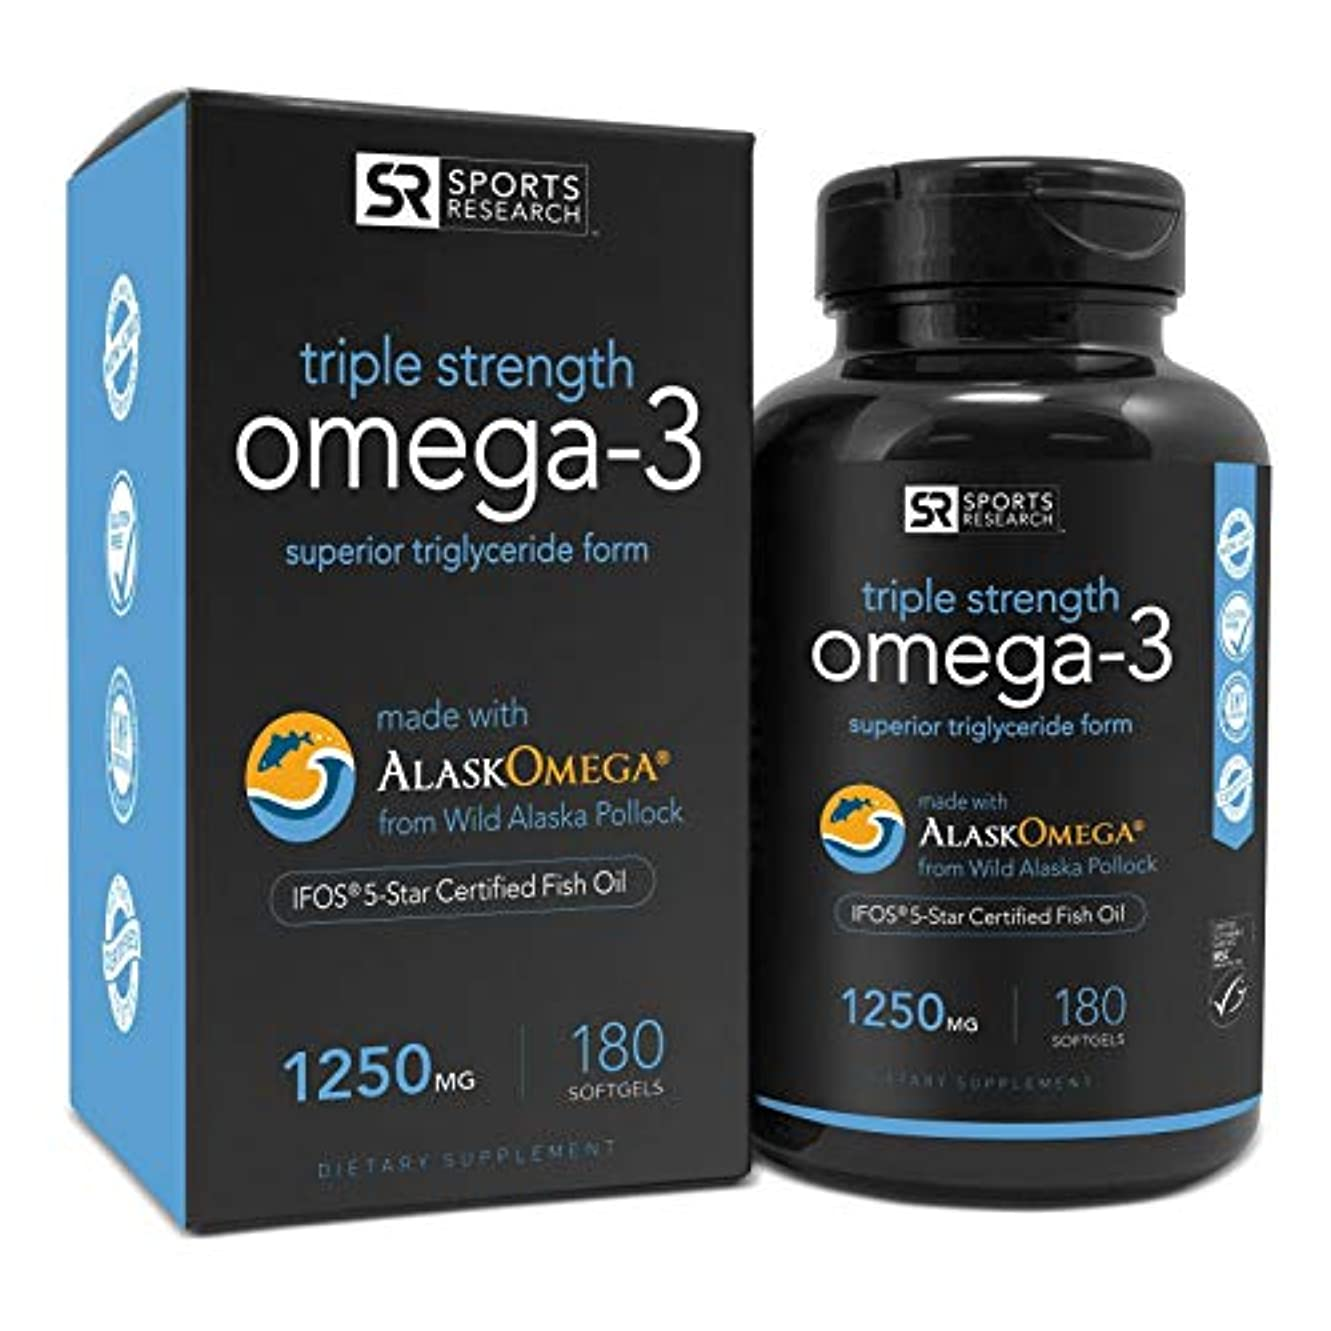 Omega-3 Fish Oil 1250mg (Triple Strength) 180 gelcaps| Contains the highest levels of triglyceride Omega-3s EPA...